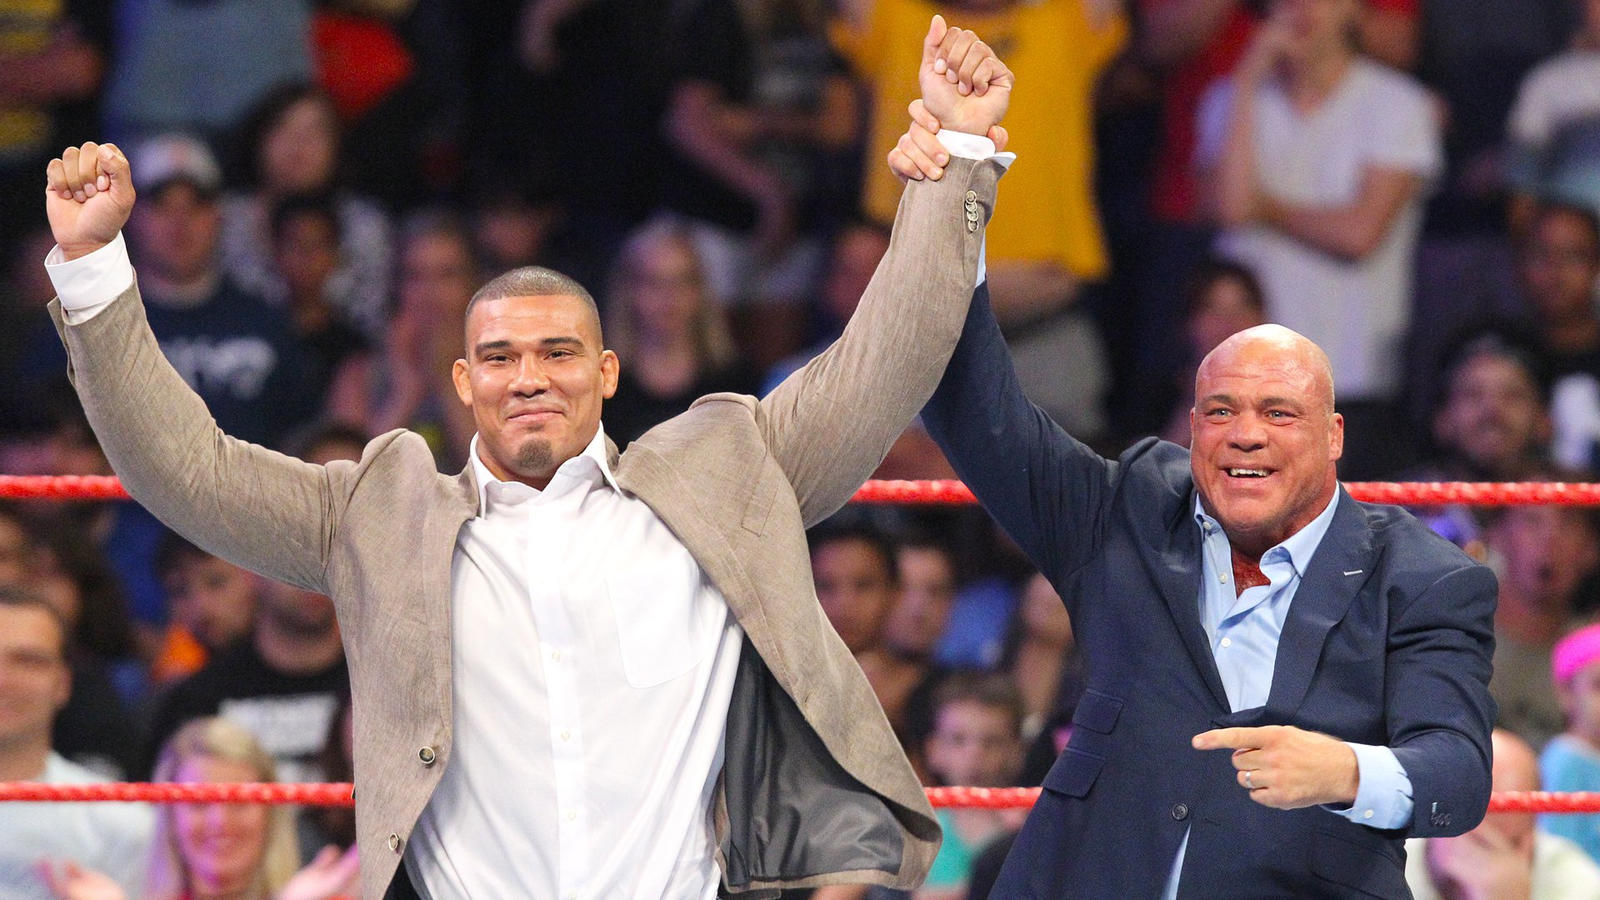 WWE Raw Results, July 17, 2017: Kurt Angle reveals that Jason Jordan is his son